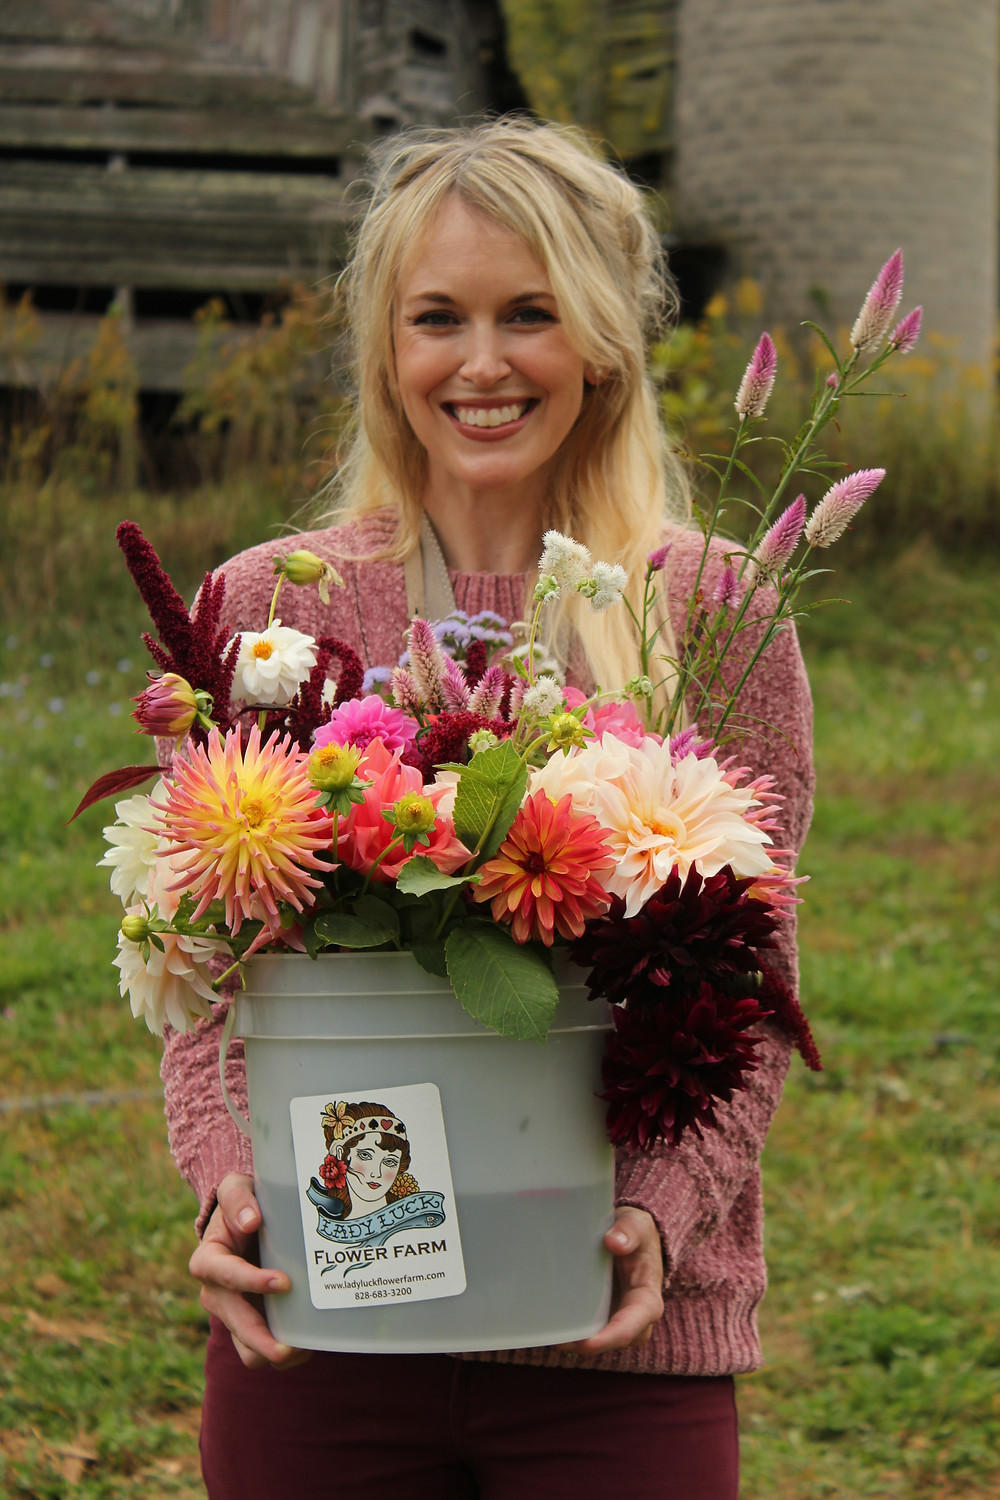 Brooke Williams smiles as she shows her bucket full of fresh flowers at Lady Luck Flower Farm in Asheville, NC.